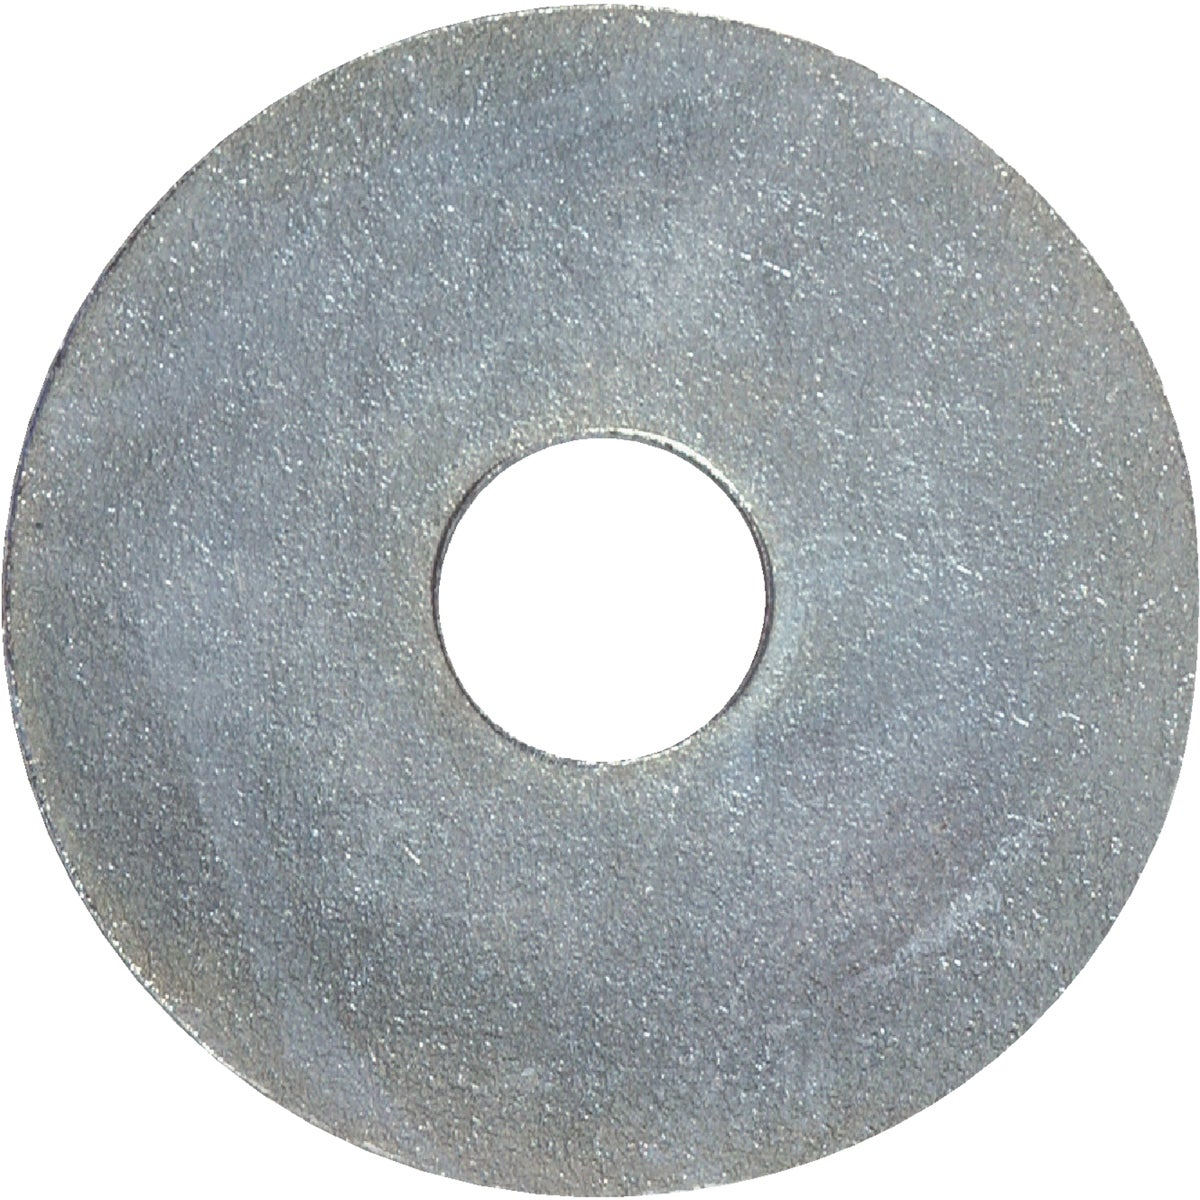 5/32X7/8 FENDER WASHER - 290002 by Hillman Fastener